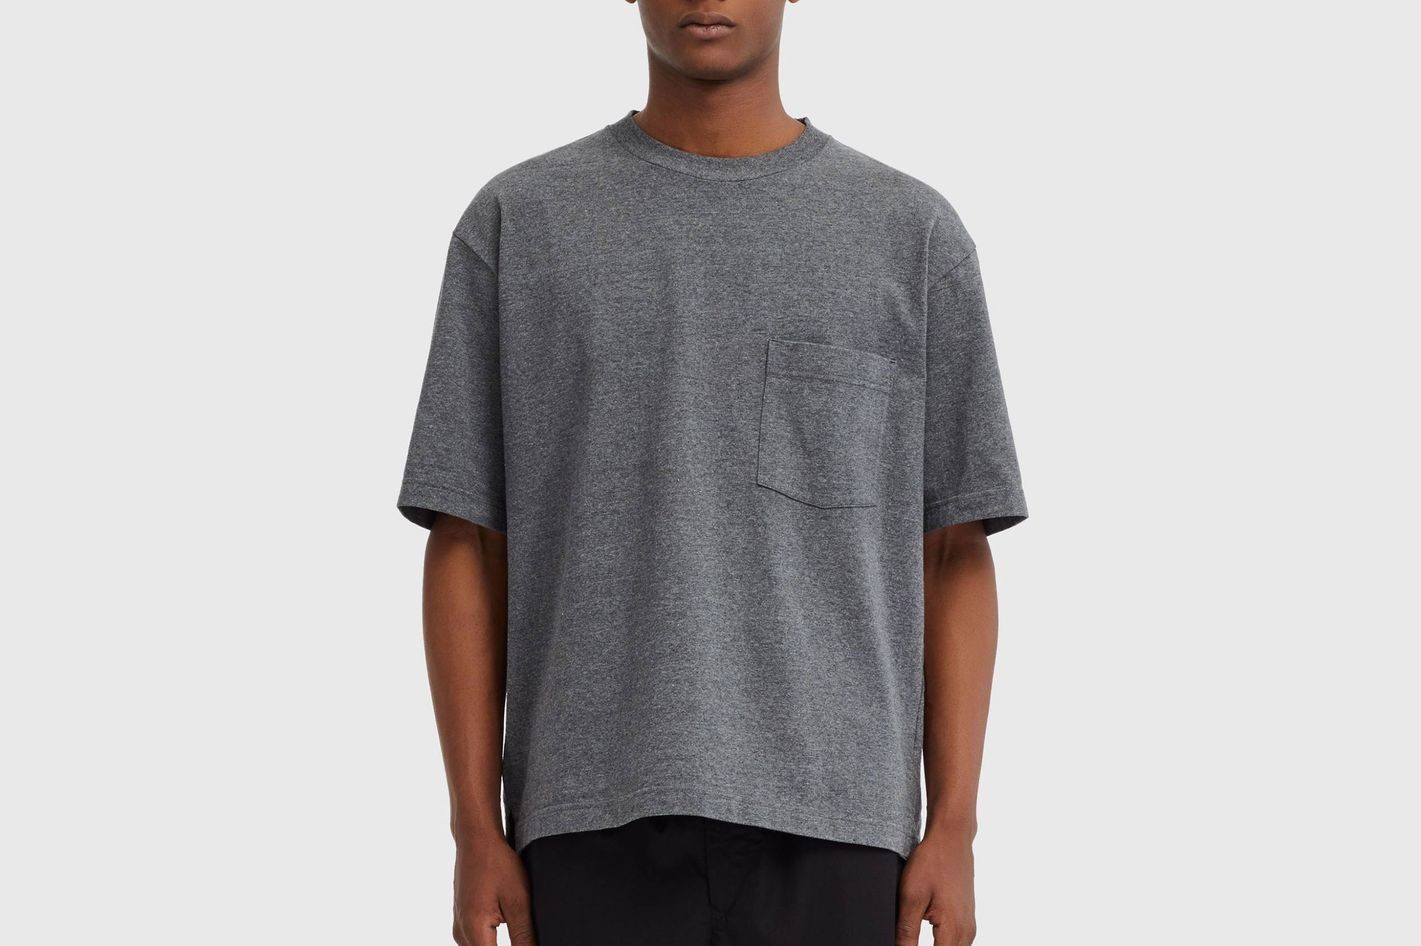 Uniqlo Men's U Oversize Crewneck Short Sleeve T-shirt